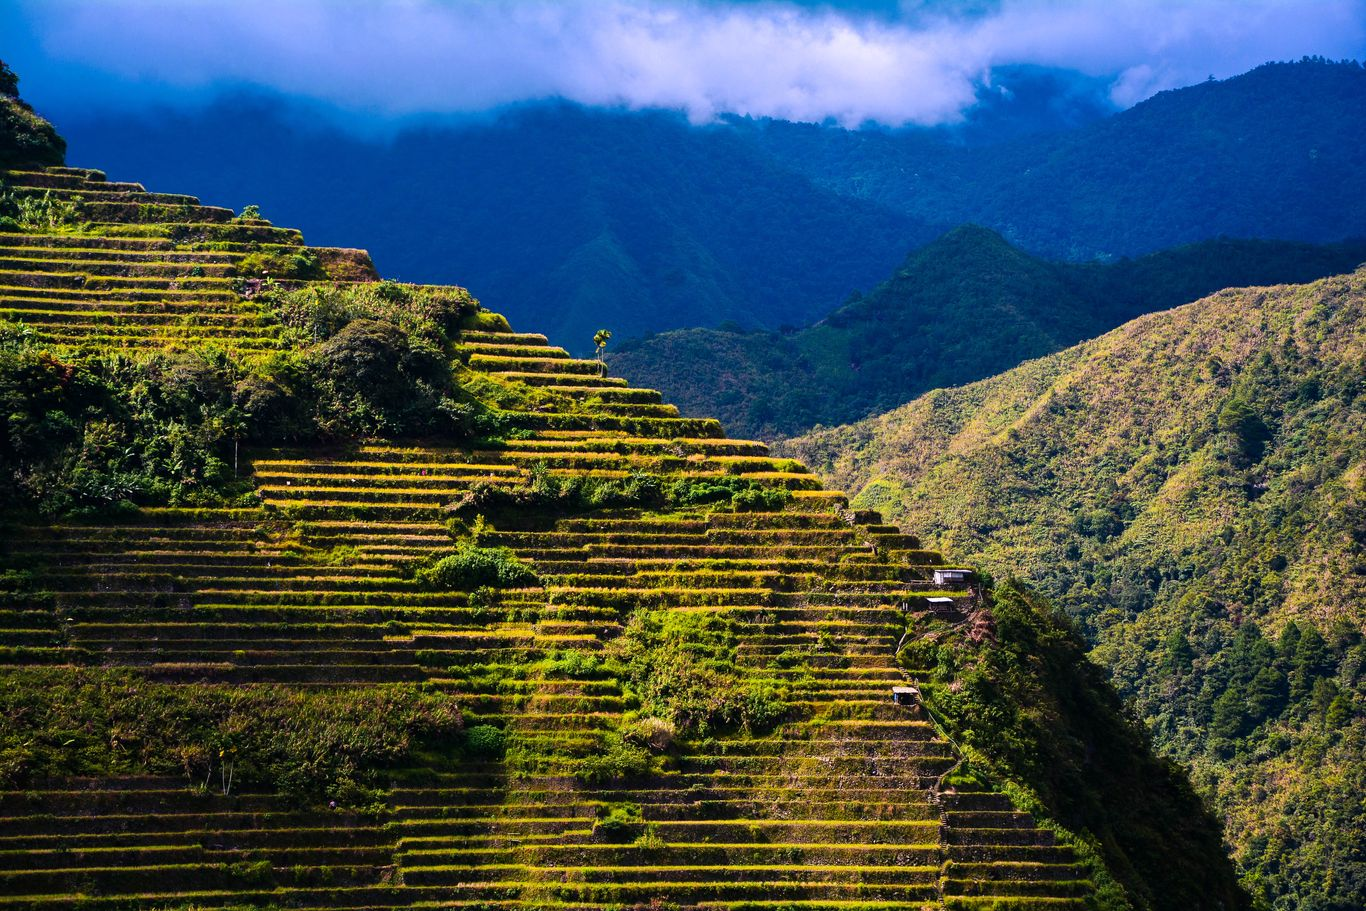 Rice terraces carved on the sheer, steep slope of a mountain, with higher mountains whose peaks are shrouded in clouds standing in the backdrop